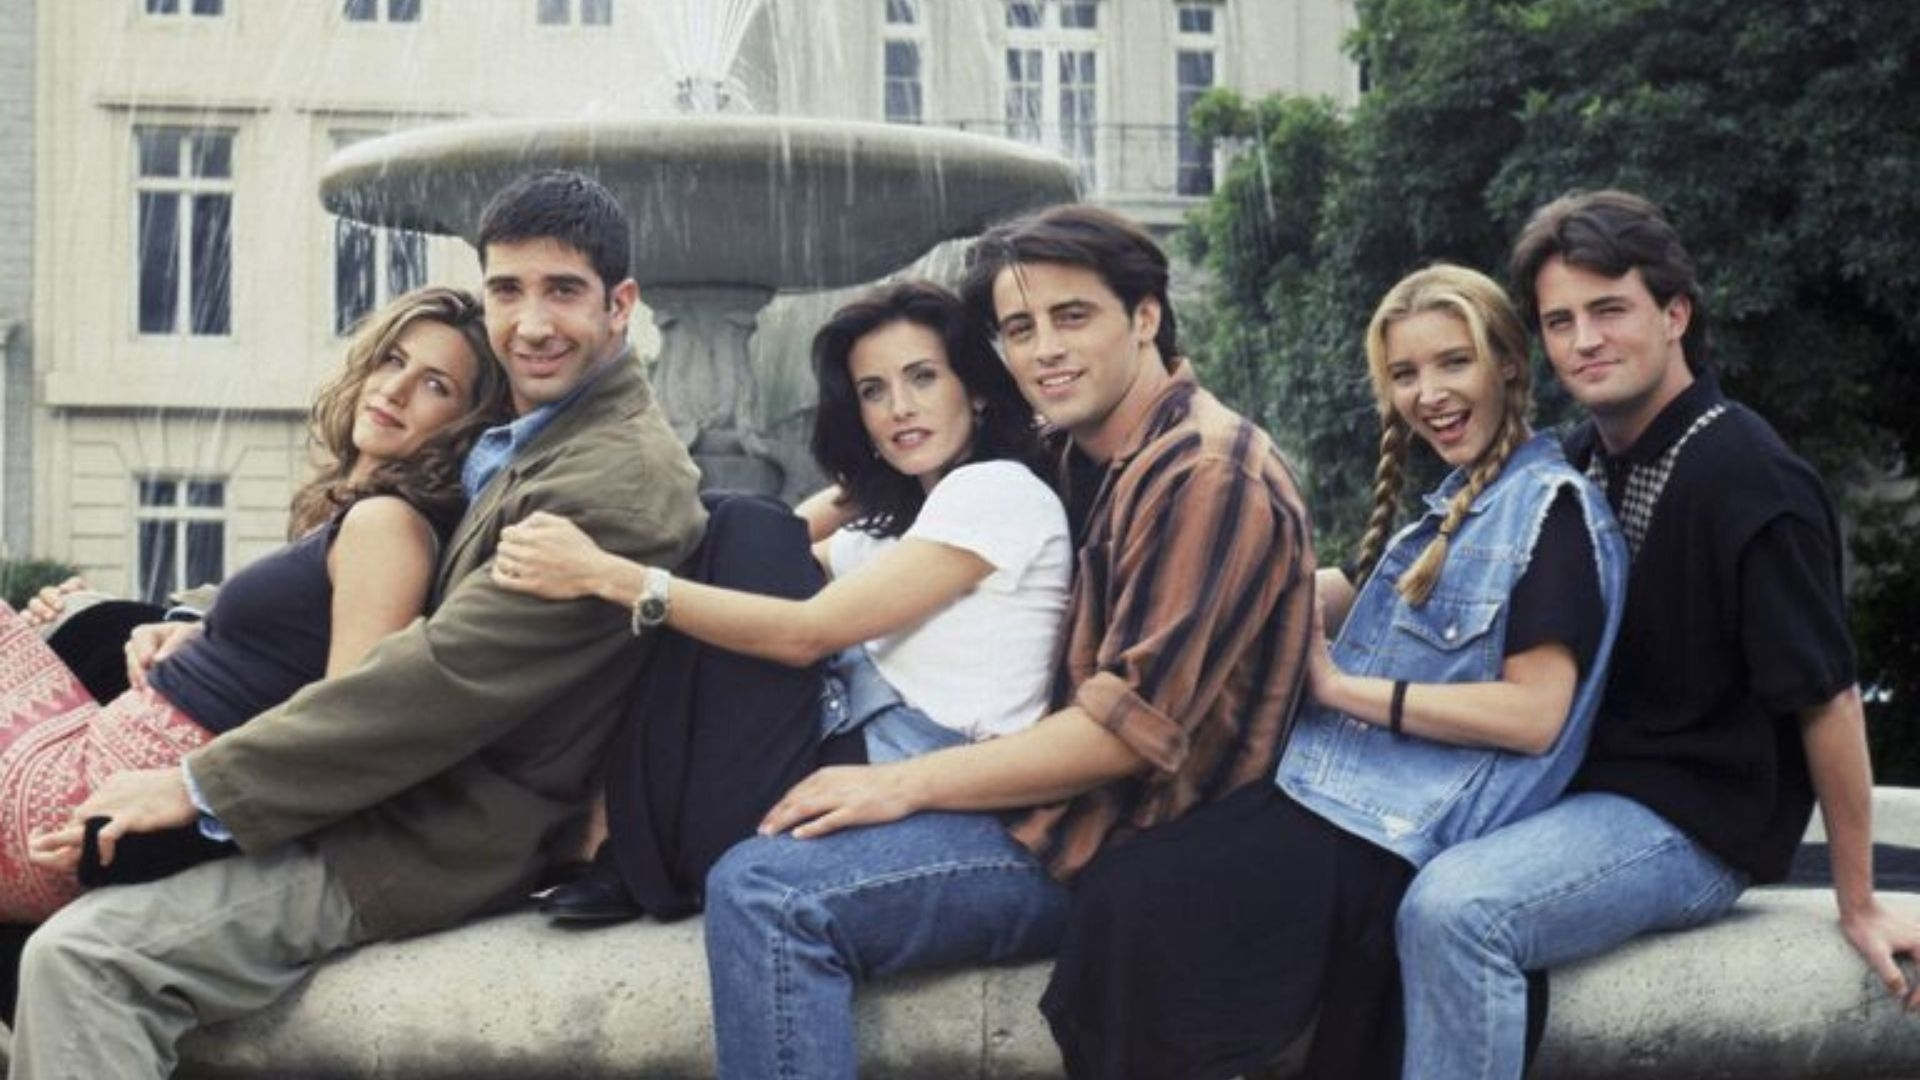 A 'Friends' Reunion Special Might Actually Be Happening